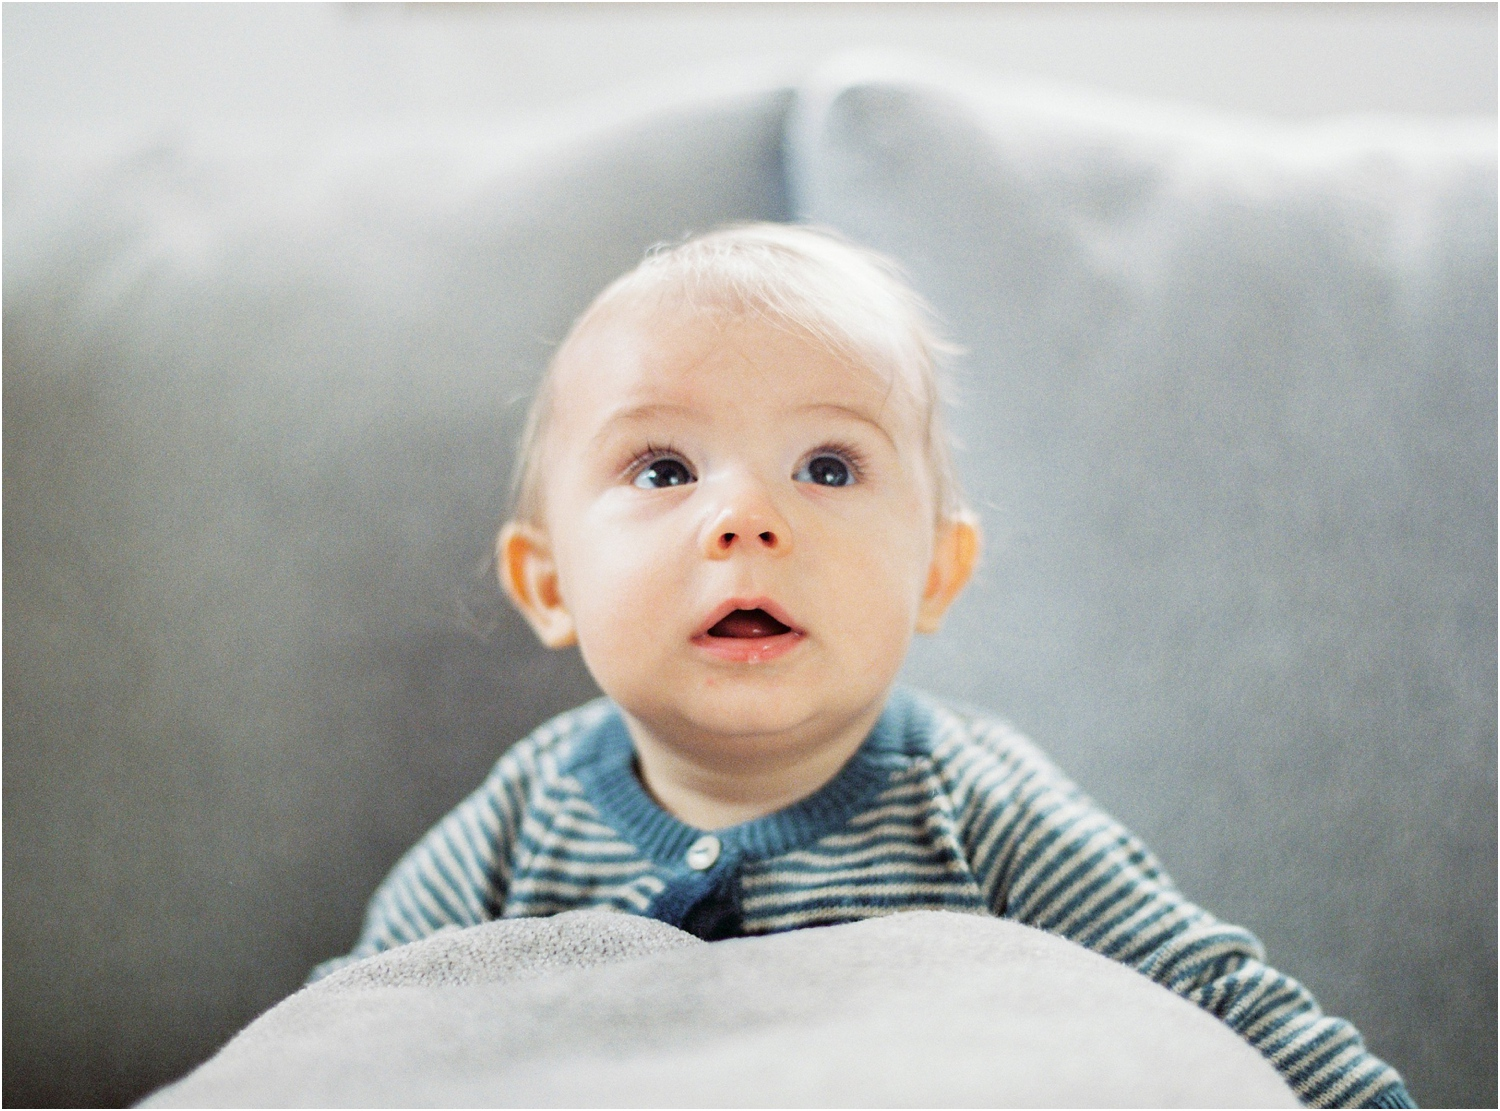 Baby and newborn photography in Notting Hill, West London